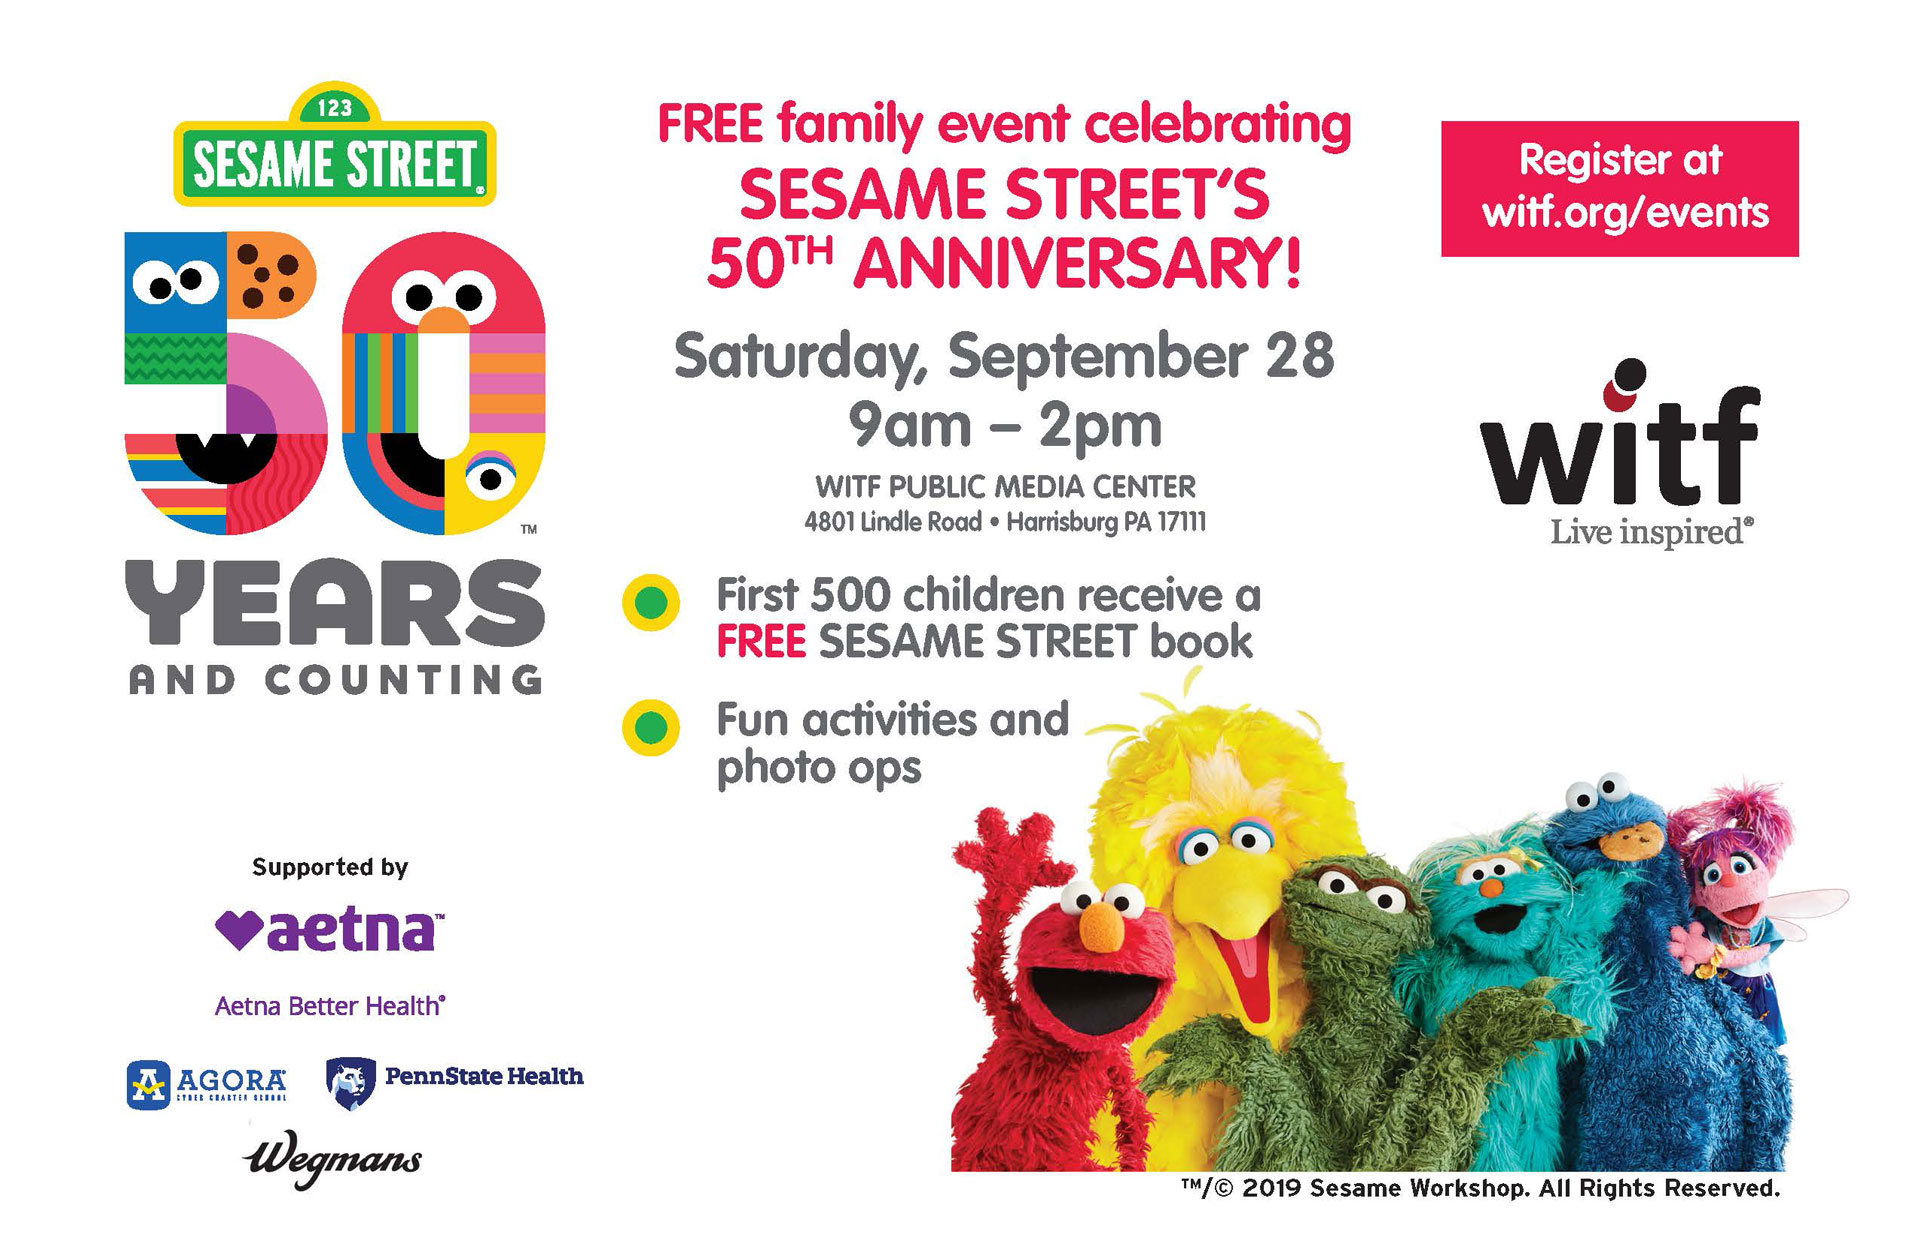 Sesame Street The Letter Of The Month Club.Sesame Street 50 Years And Counting Witf